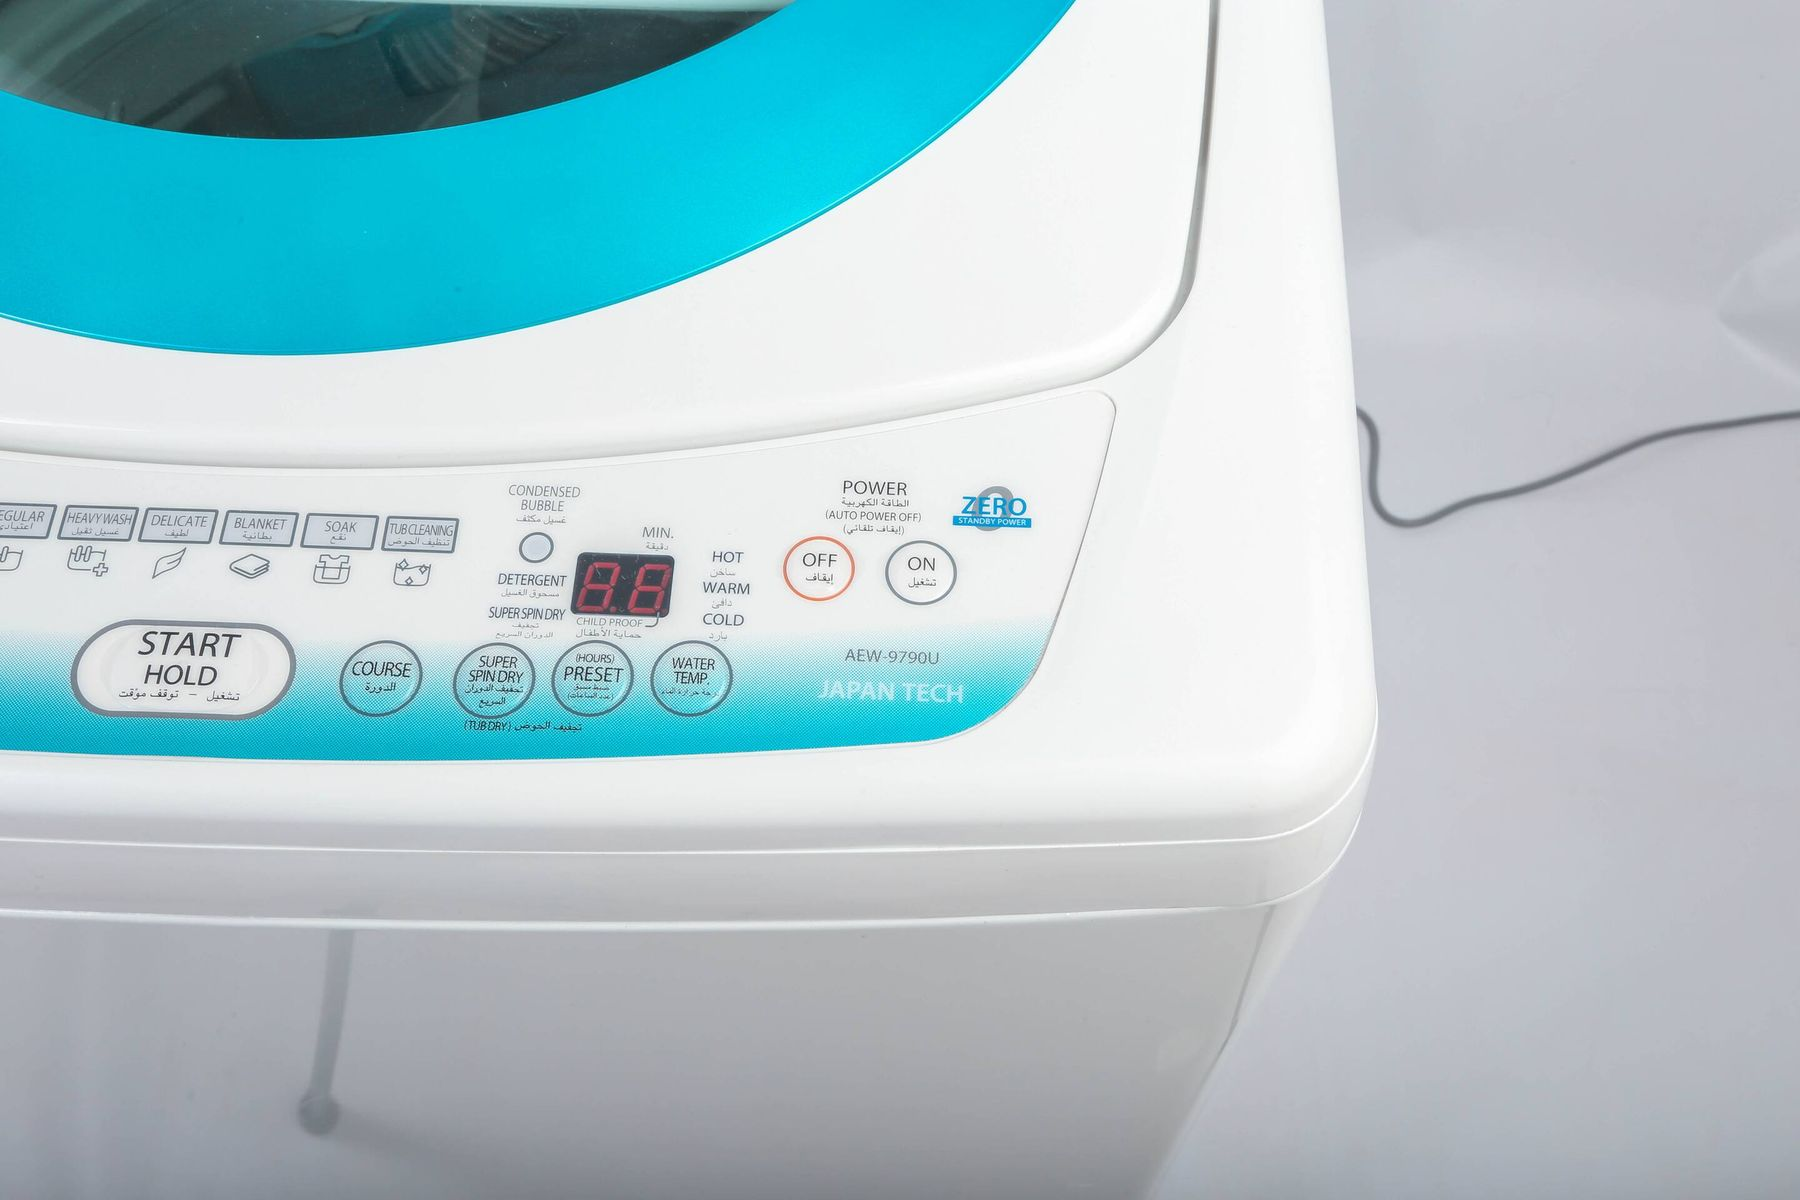 Buying a Top-Loading Washing Machine? Consider This Advice